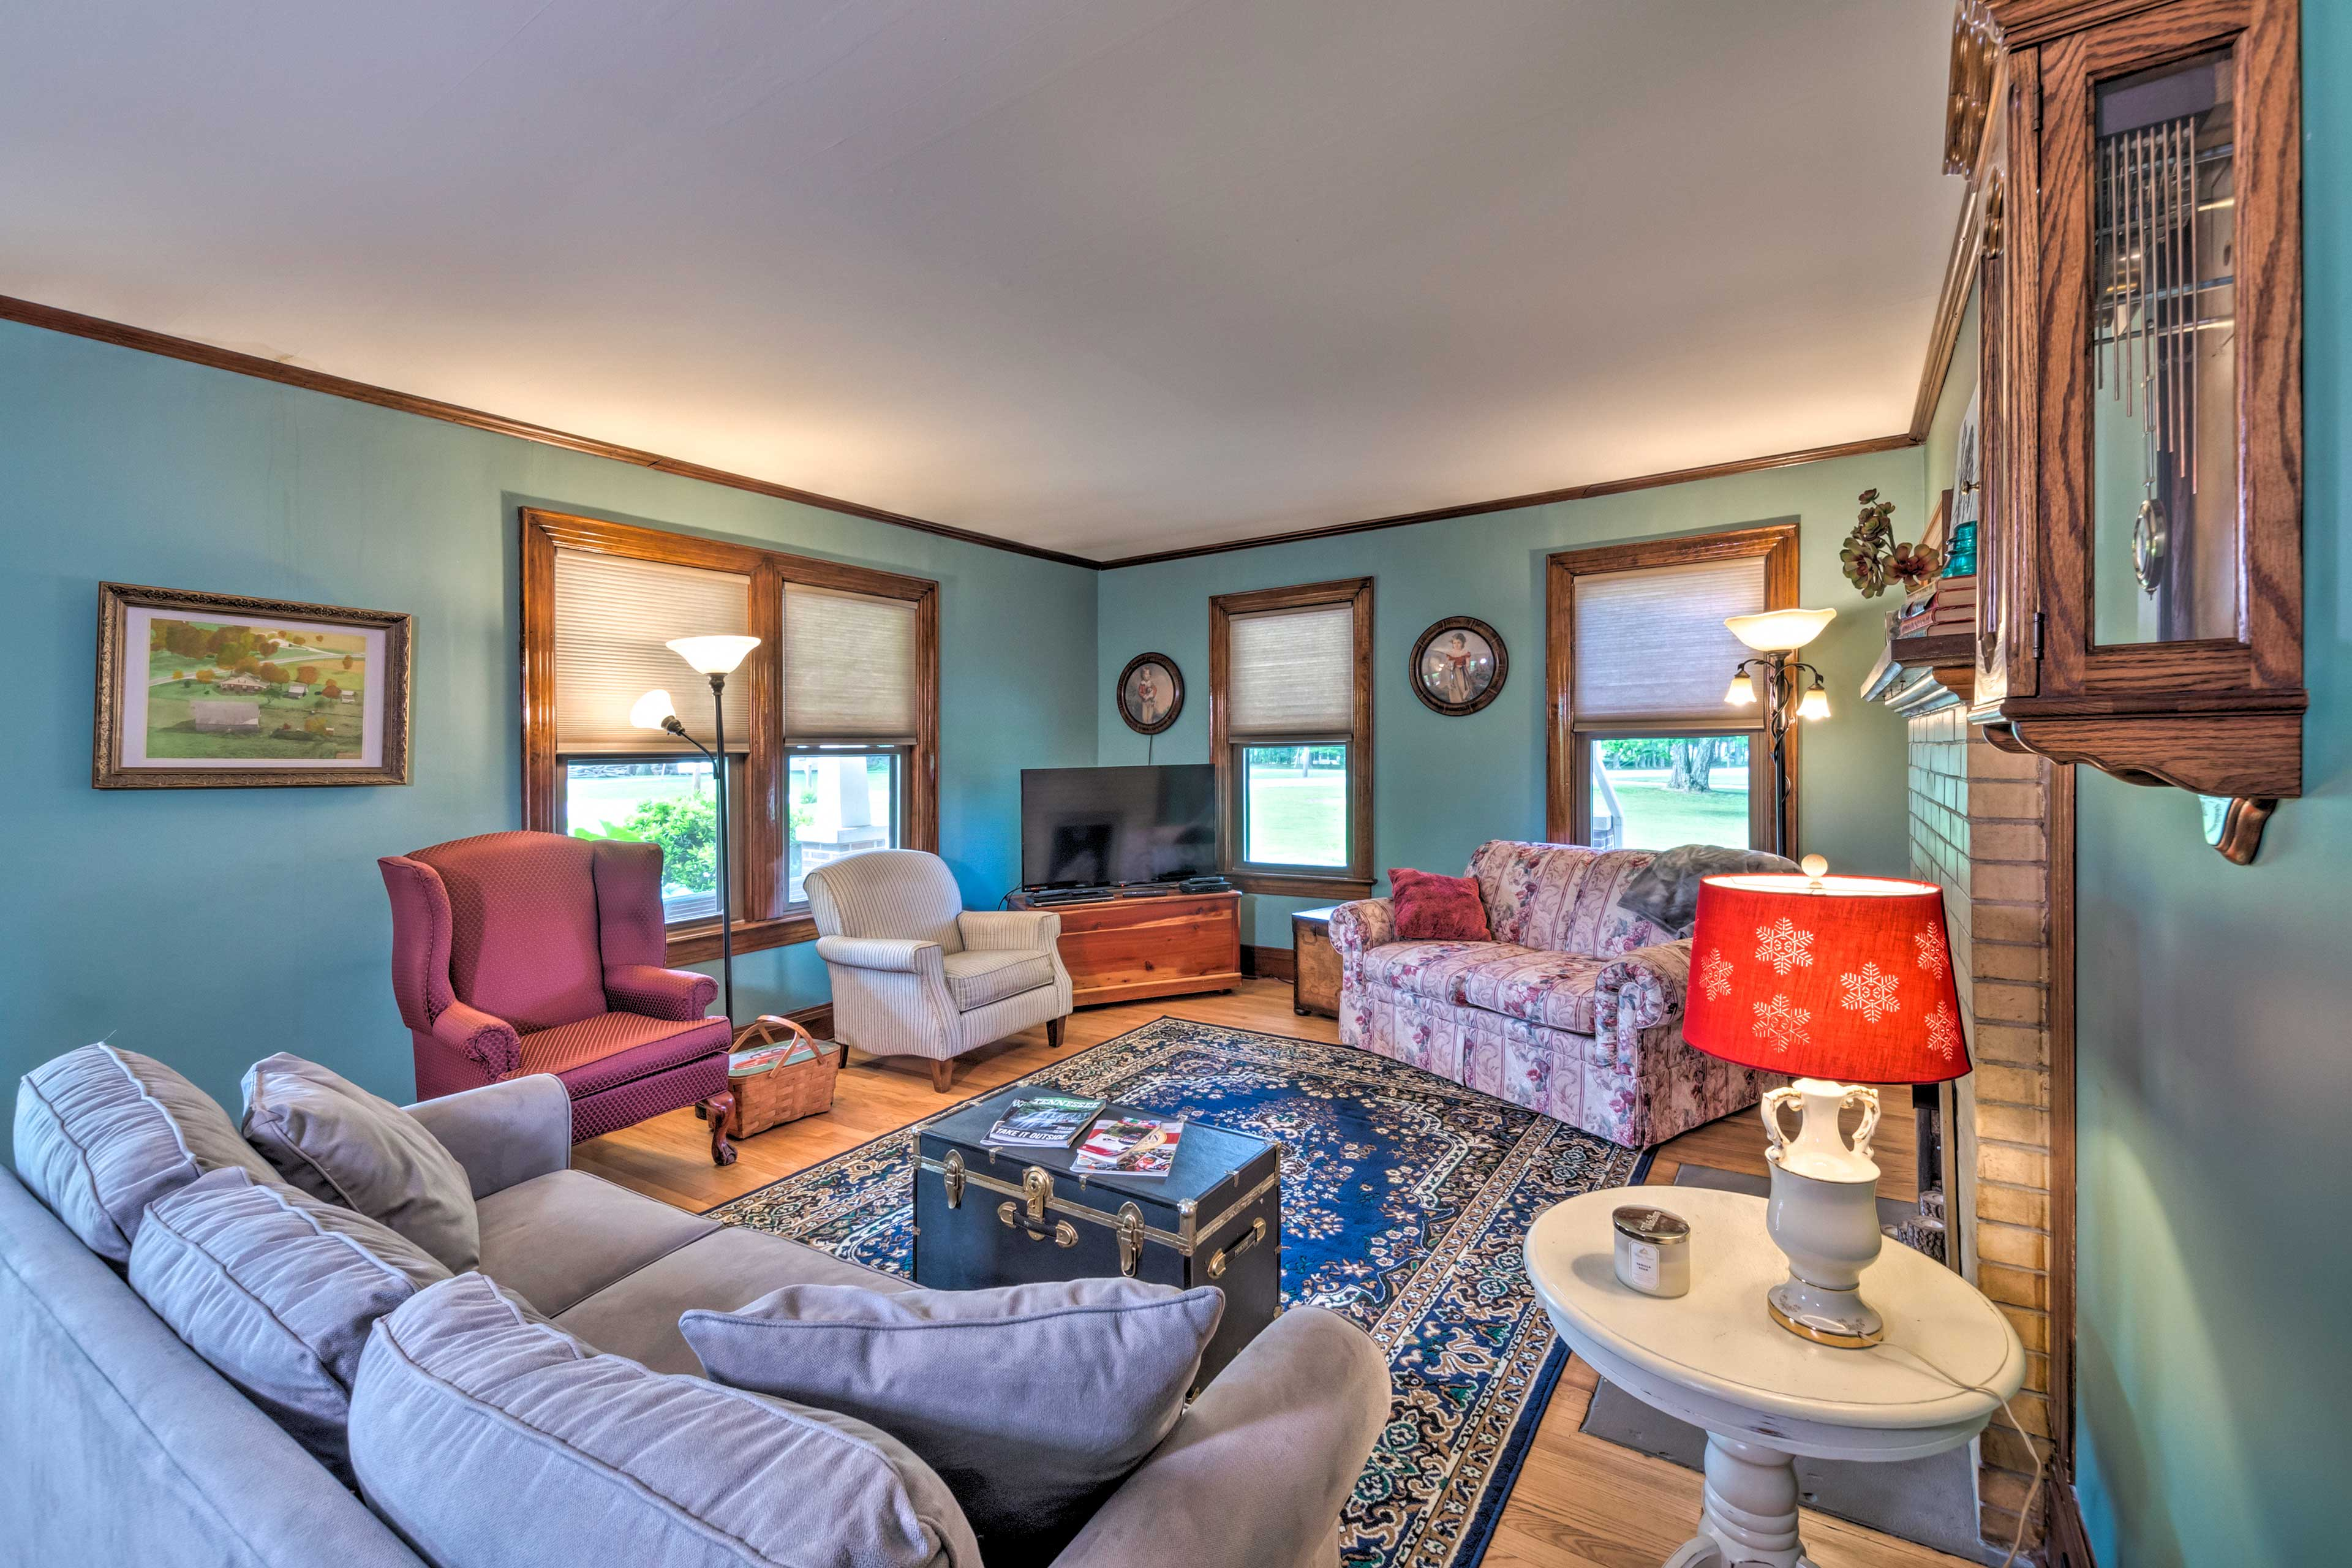 Watch movies on the flat-screen TV while relaxing on the colorful couches.